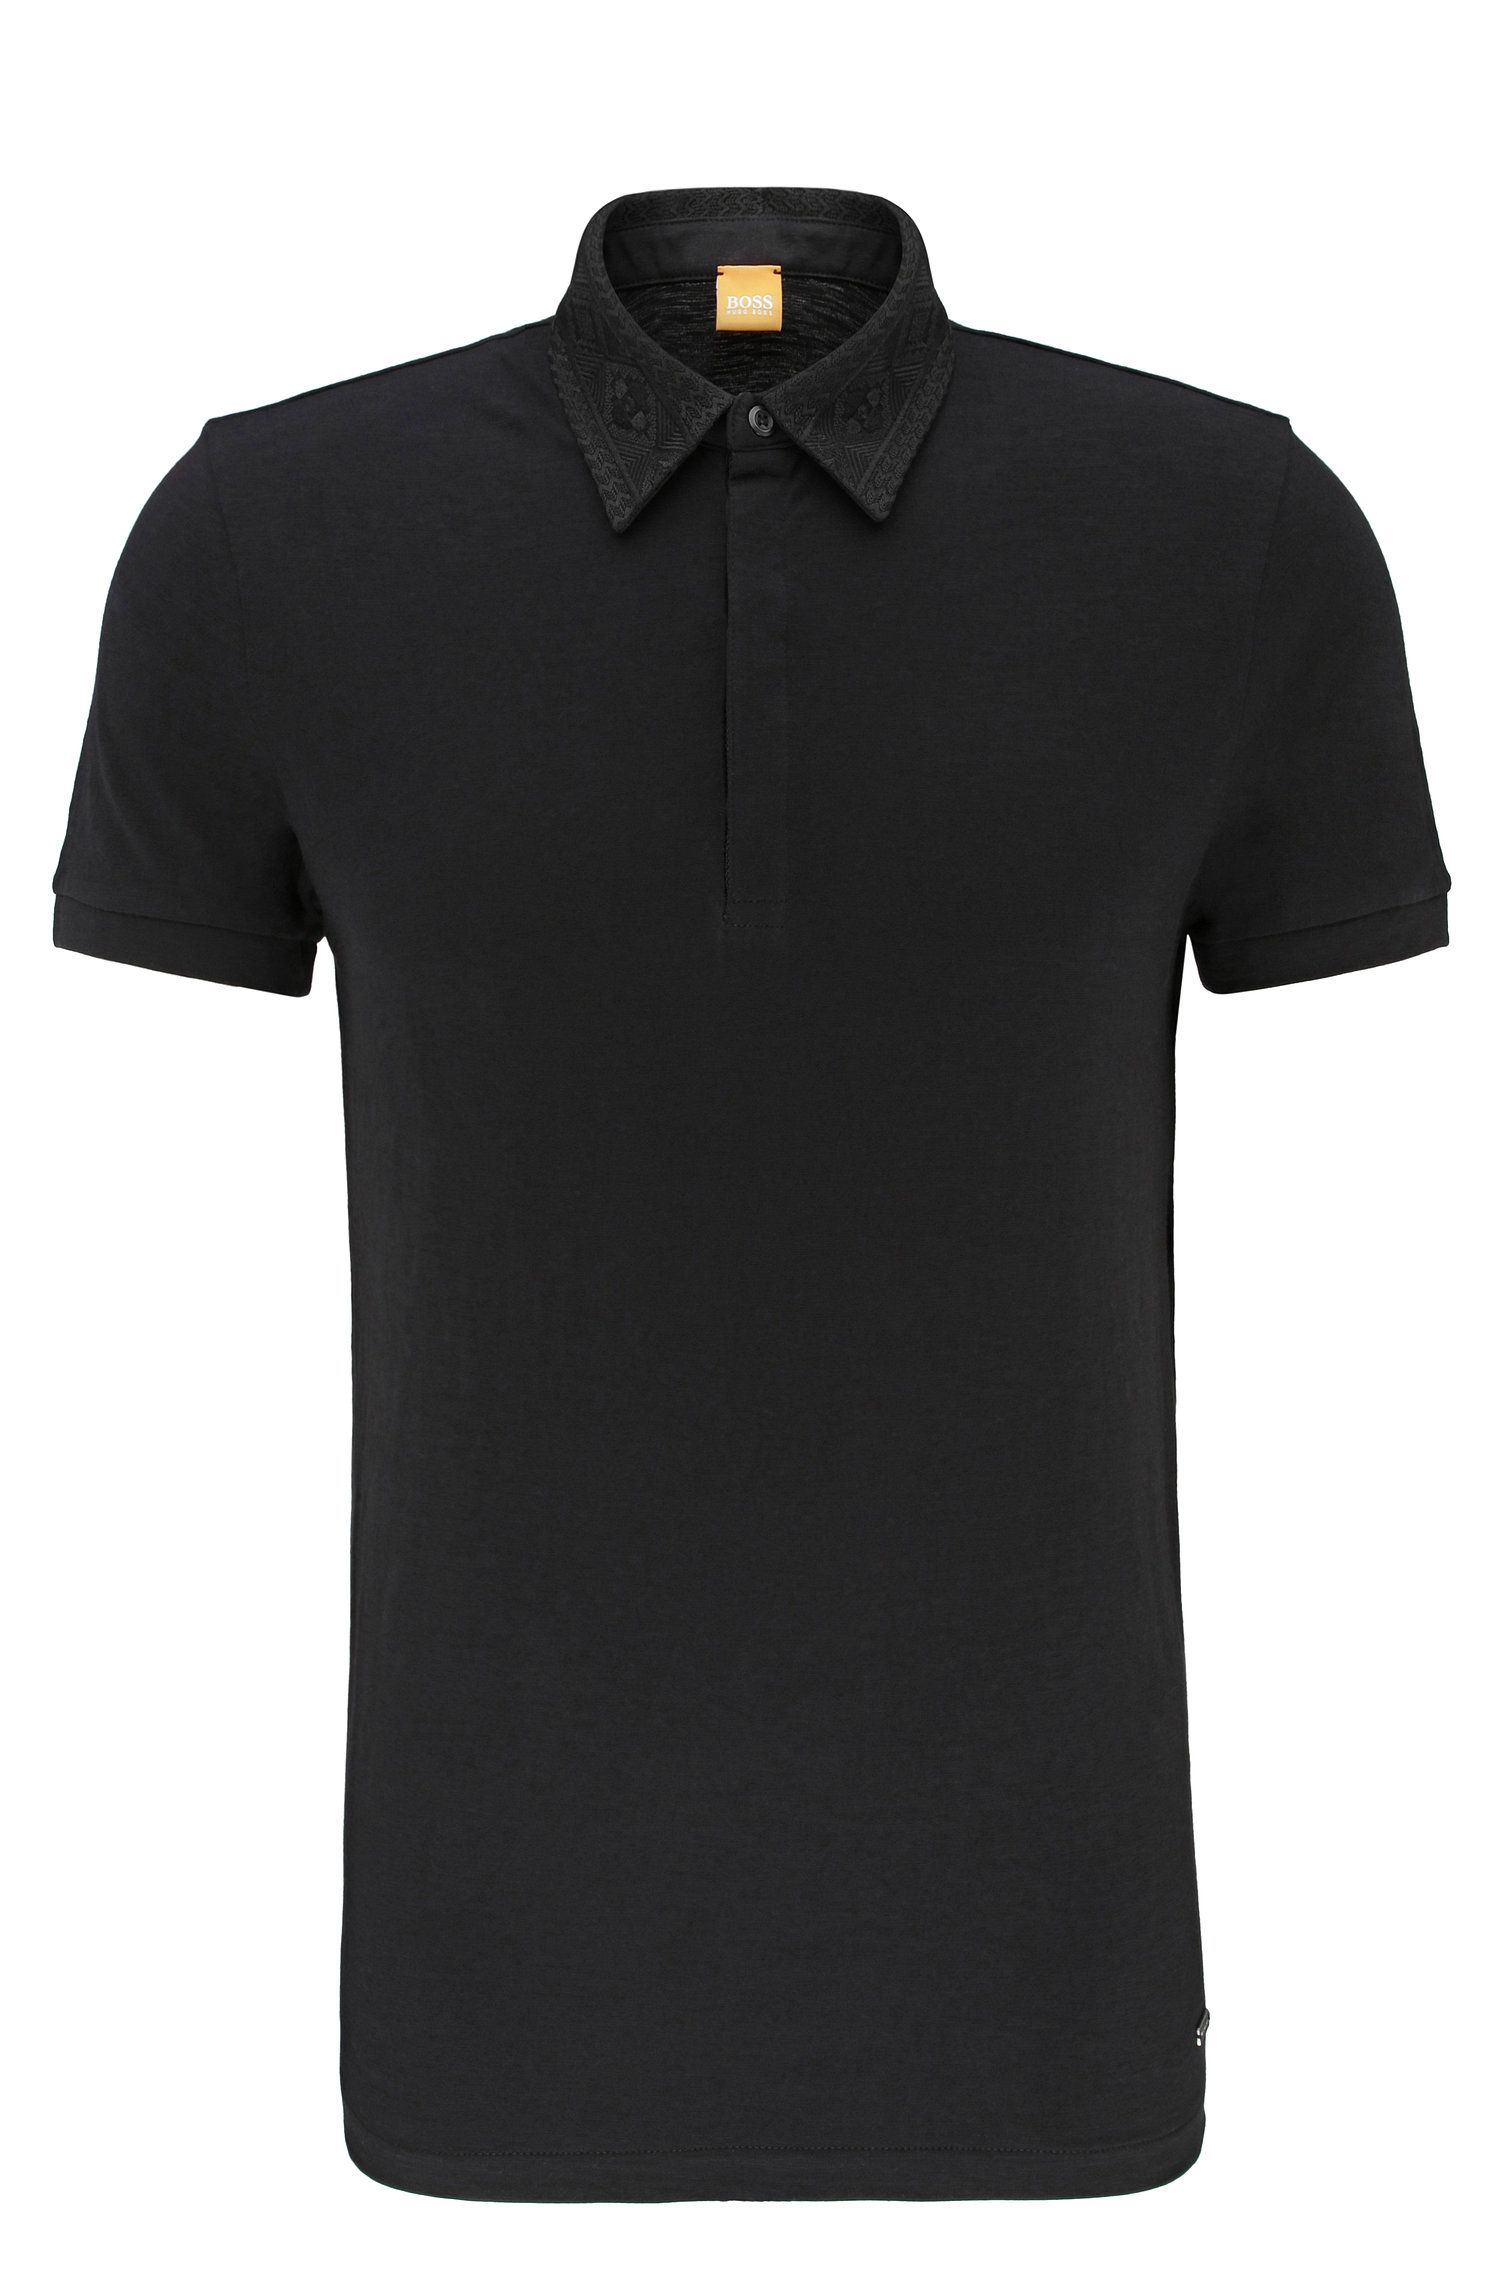 'Poesy' | Relaxed Fit, Cotton Embroidered Collar Polo Shirt